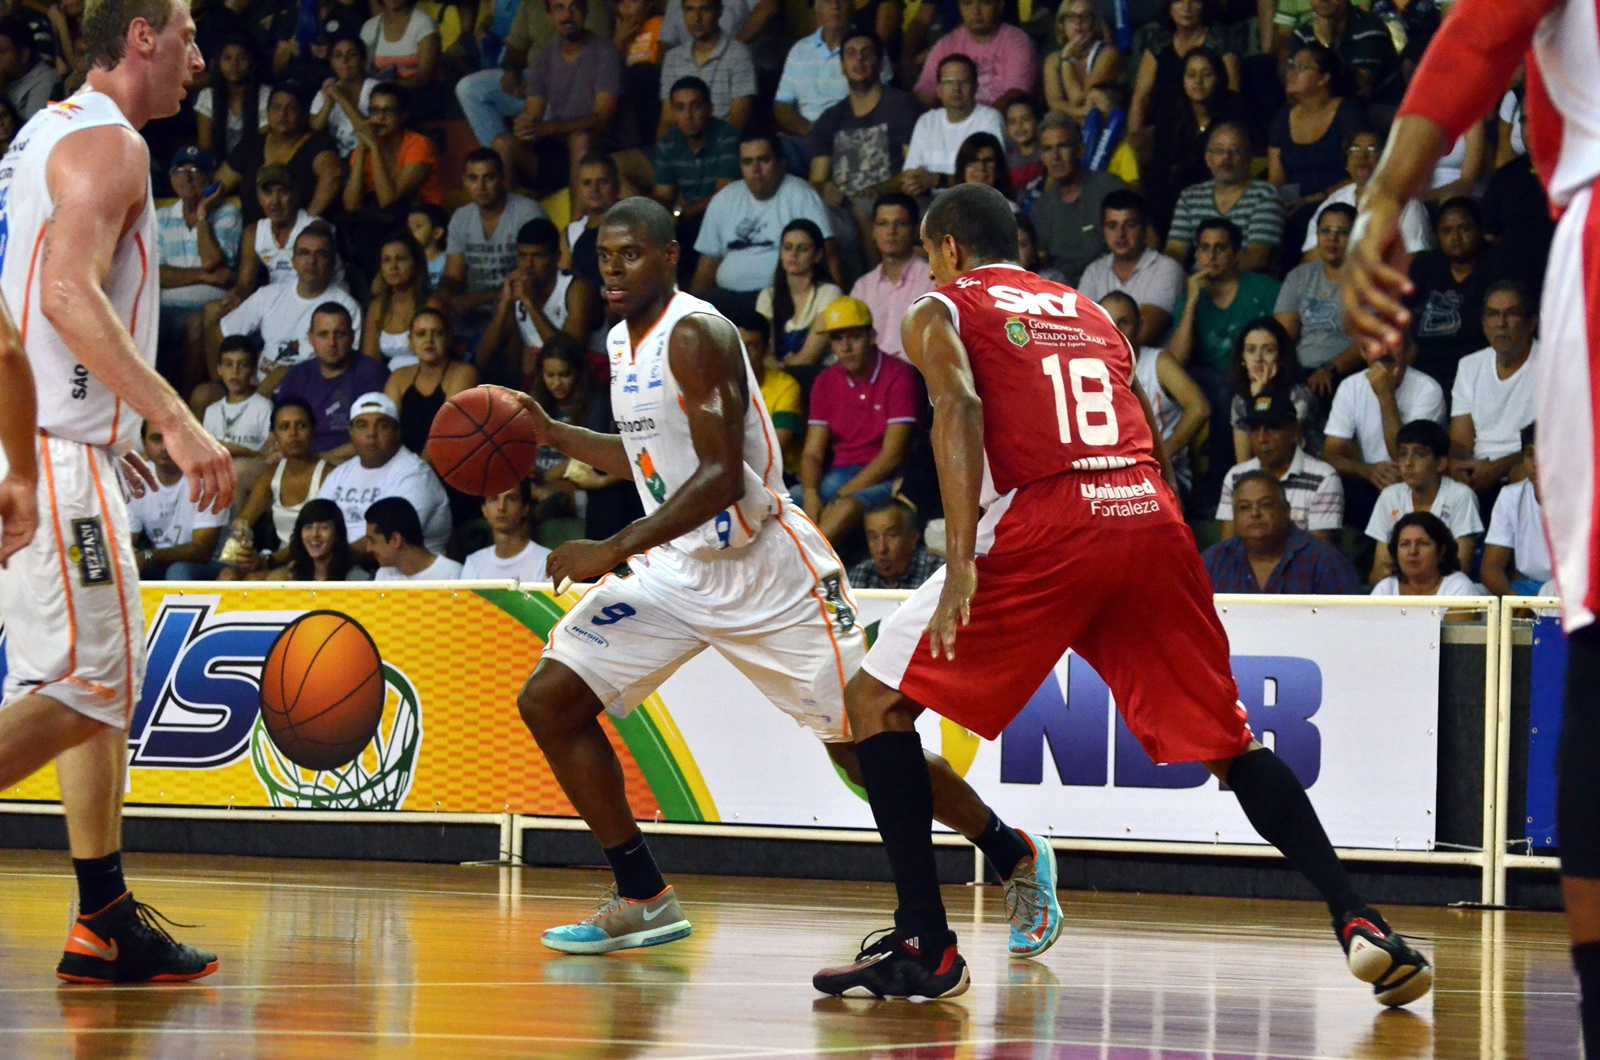 Gui Deodato, do Bauru, e Jimmy, do Basquete Cearense